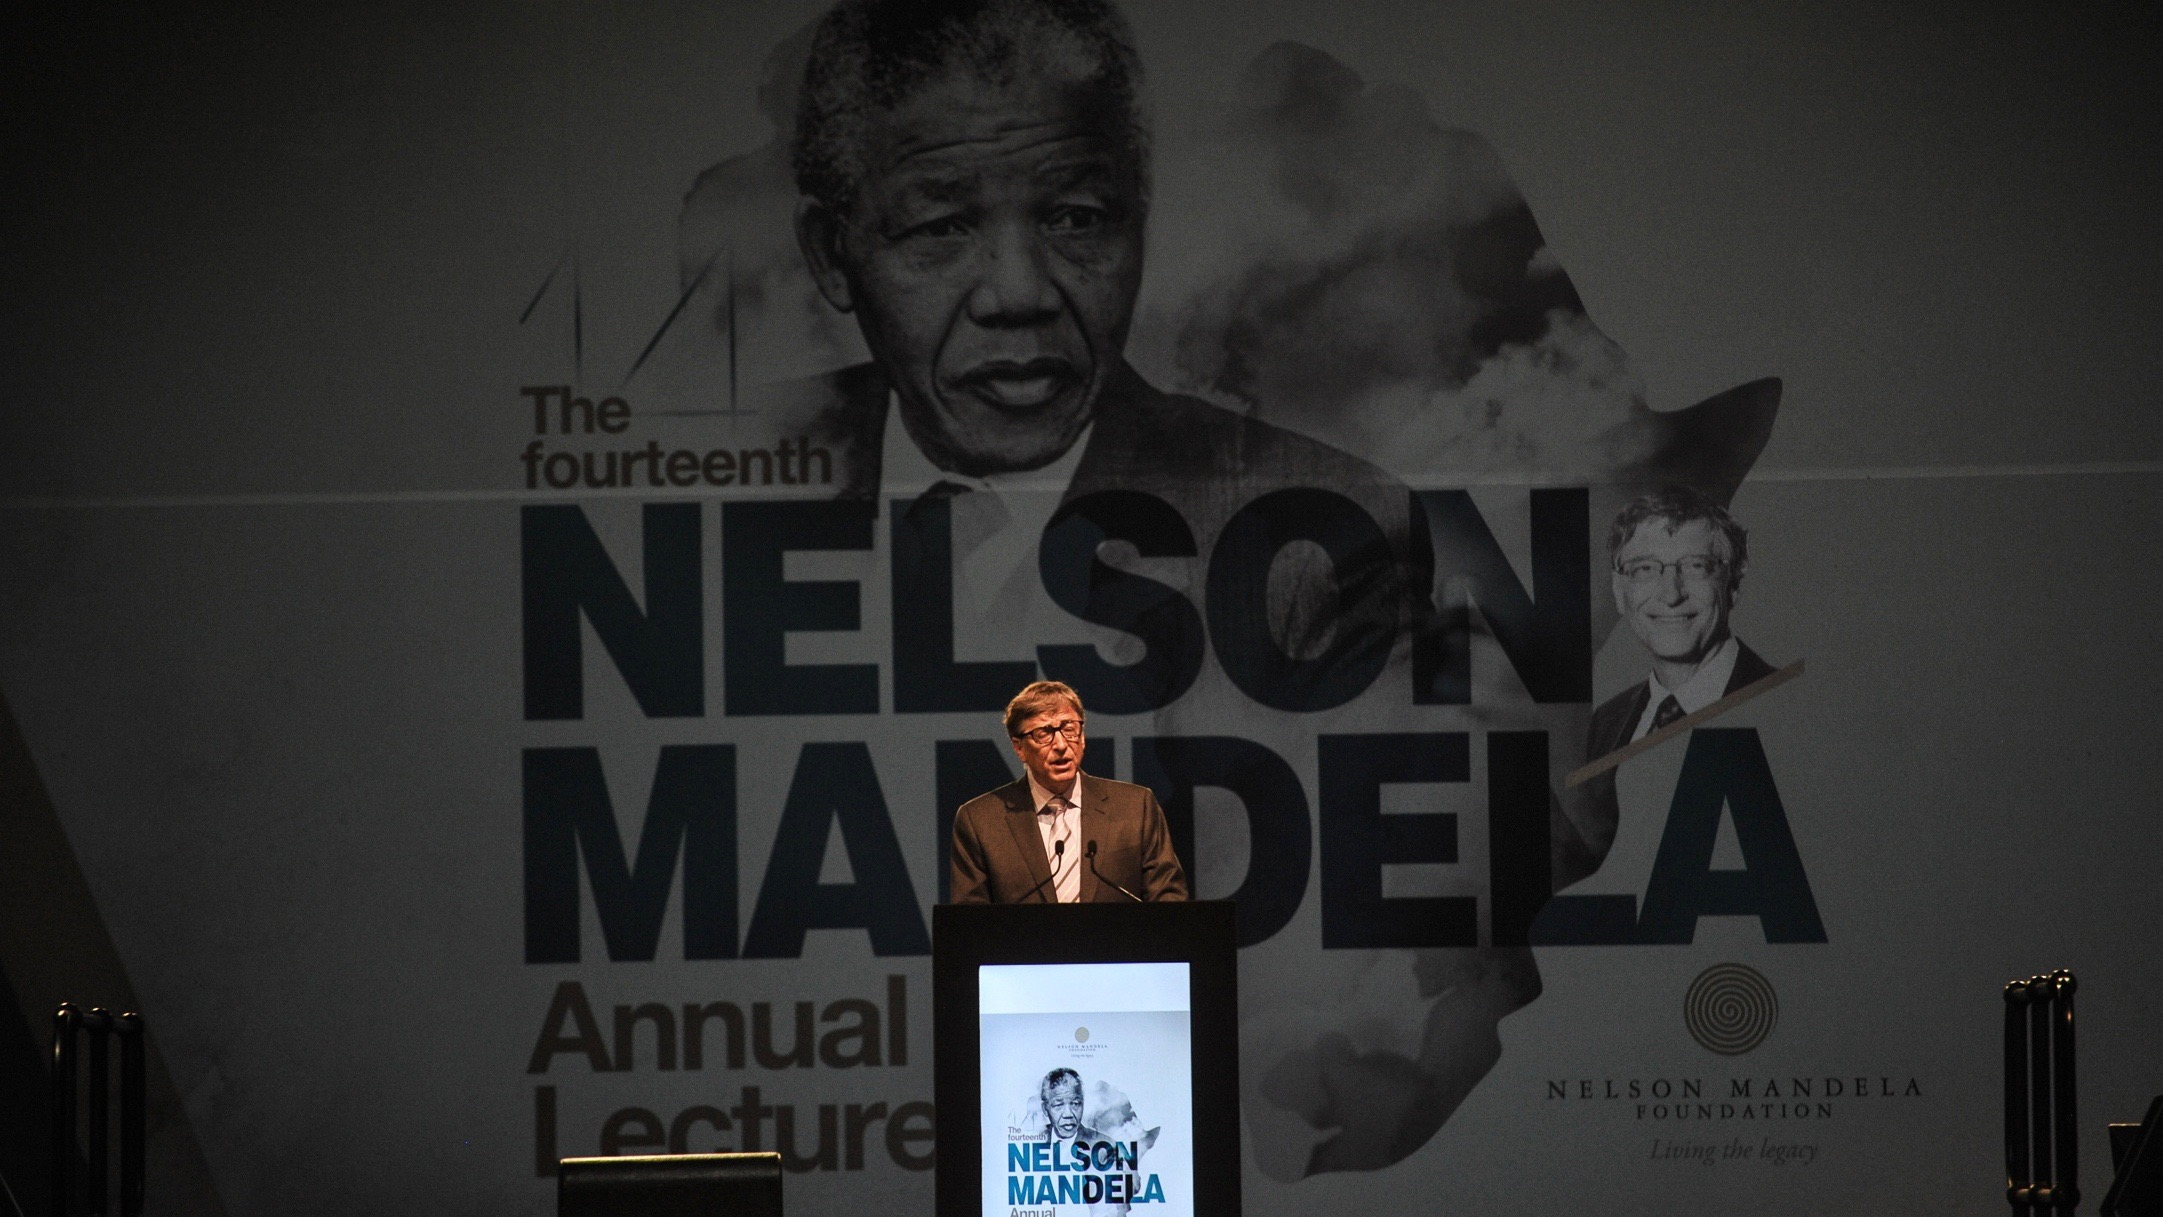 Microsoft co-founder and philanthropist Bill Gates delivers the Nelson Mandela Annual Lecture in Pretoria, South Africa, Sunday, July 17, 2016. Gates said that his foundation will invest another $5 billion in Africa over the next five years.